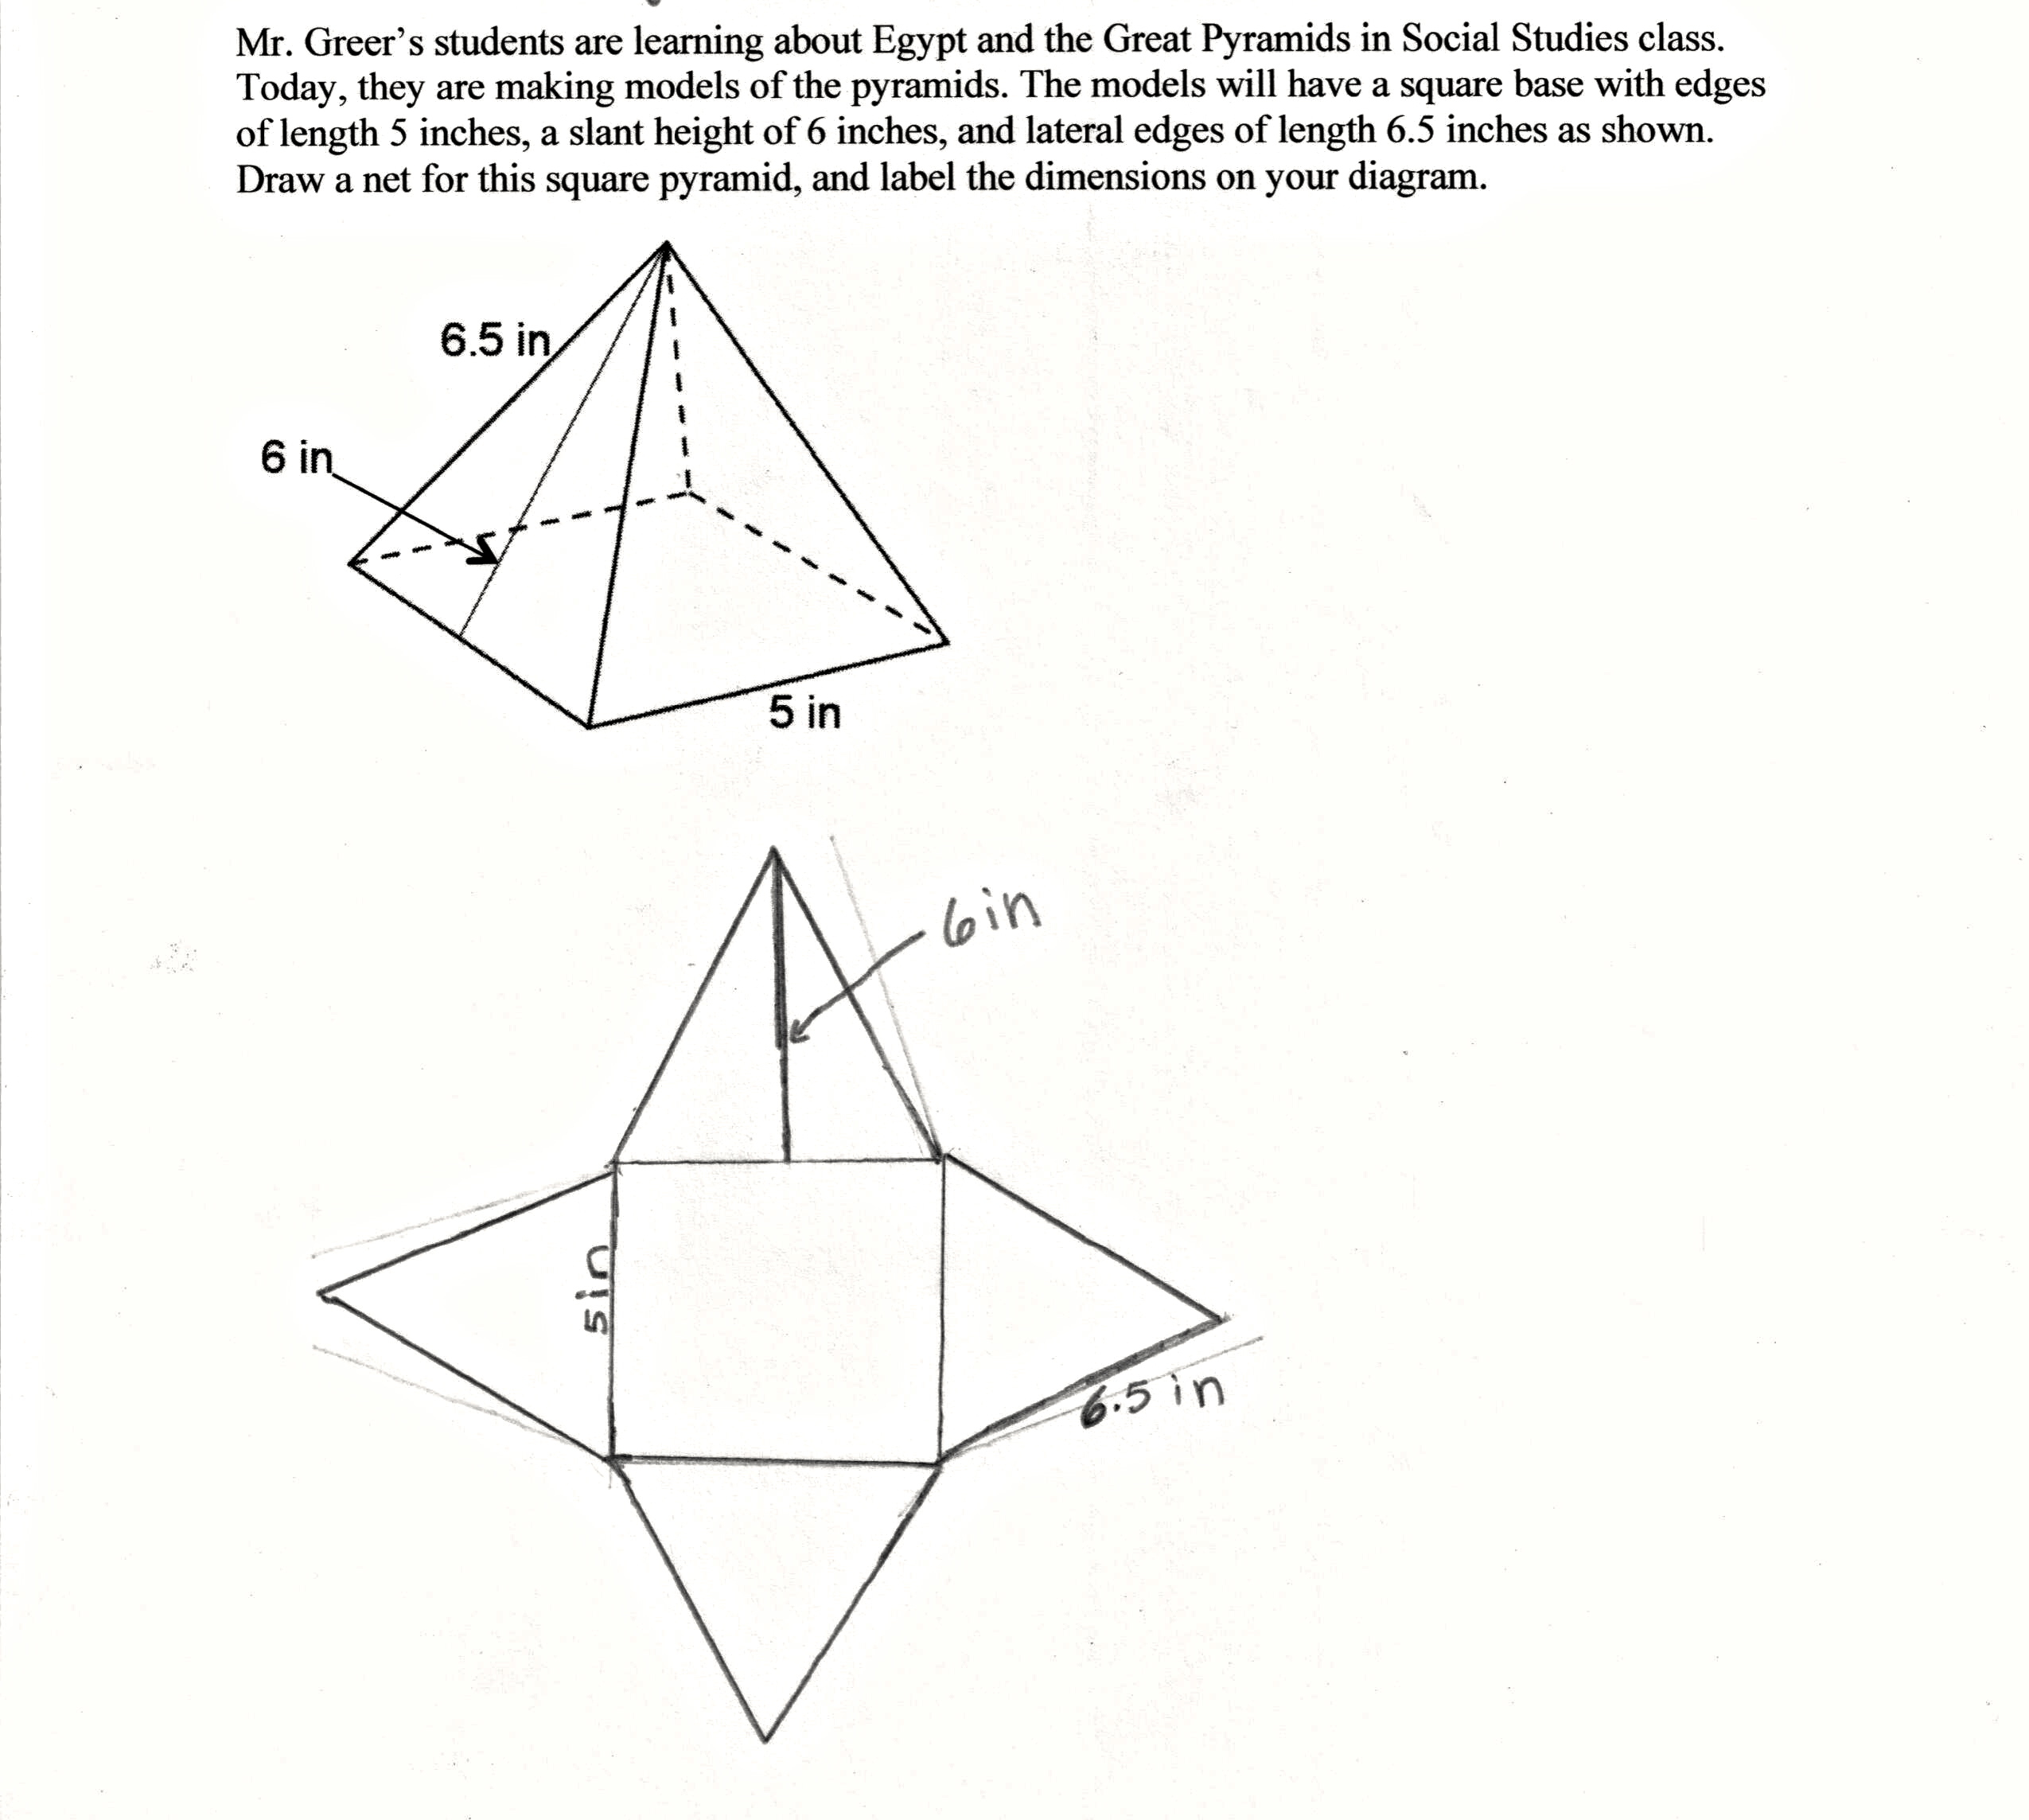 Drawn pyramid right Accurately three net using figure